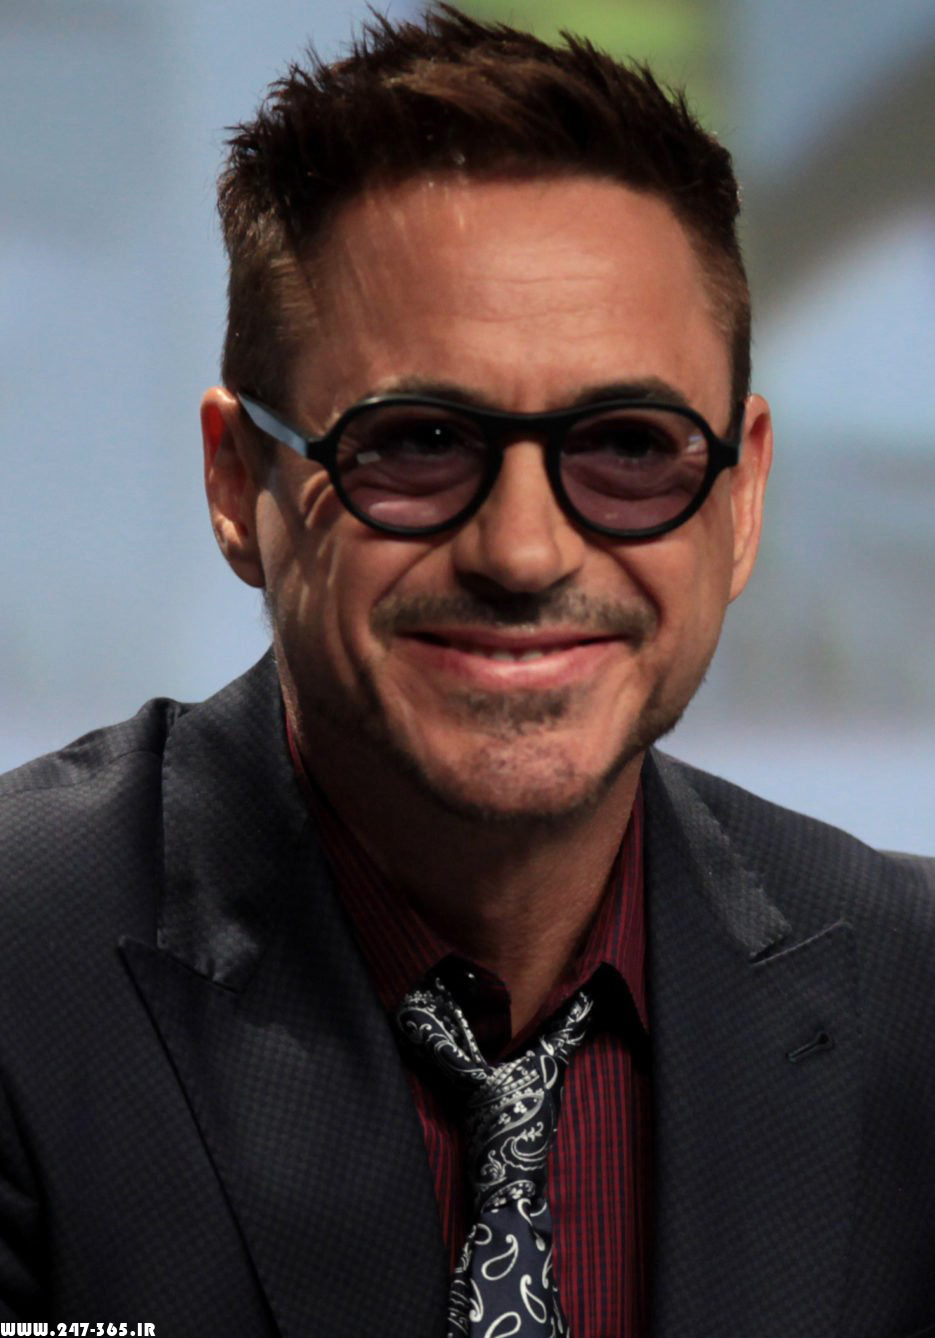 http://dl.247-365.ir/pic/celebrity/robert_downey_jr_2/Robert_Downey_Jr_2_18.jpg